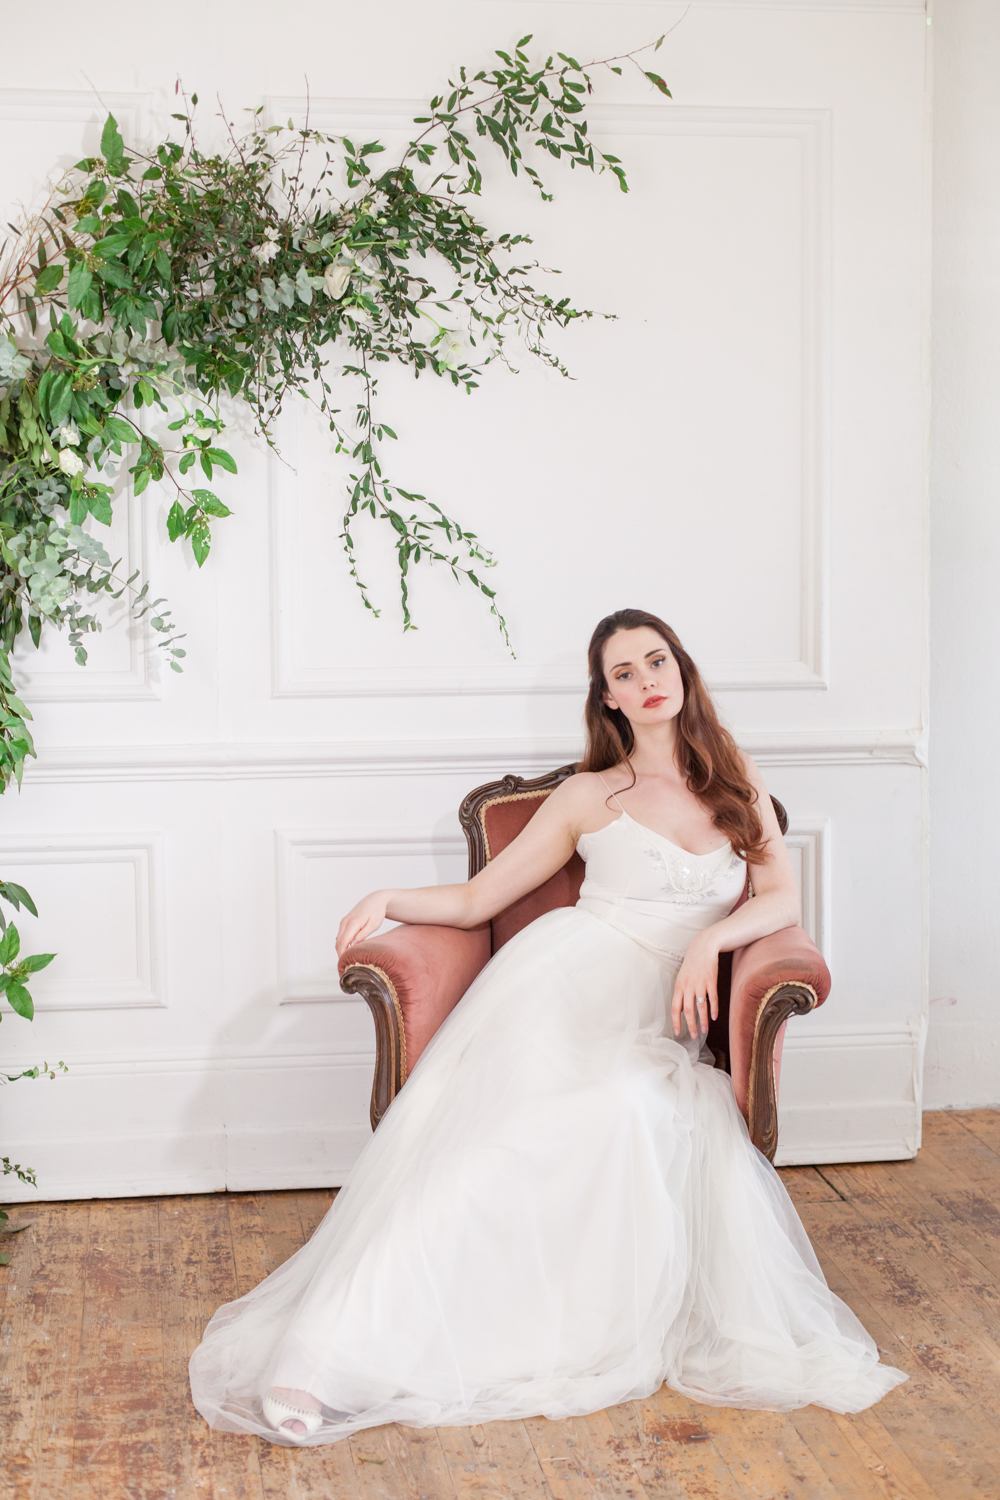 The Timeless Stylist - Timeless and Elegant Wedding Inspiration